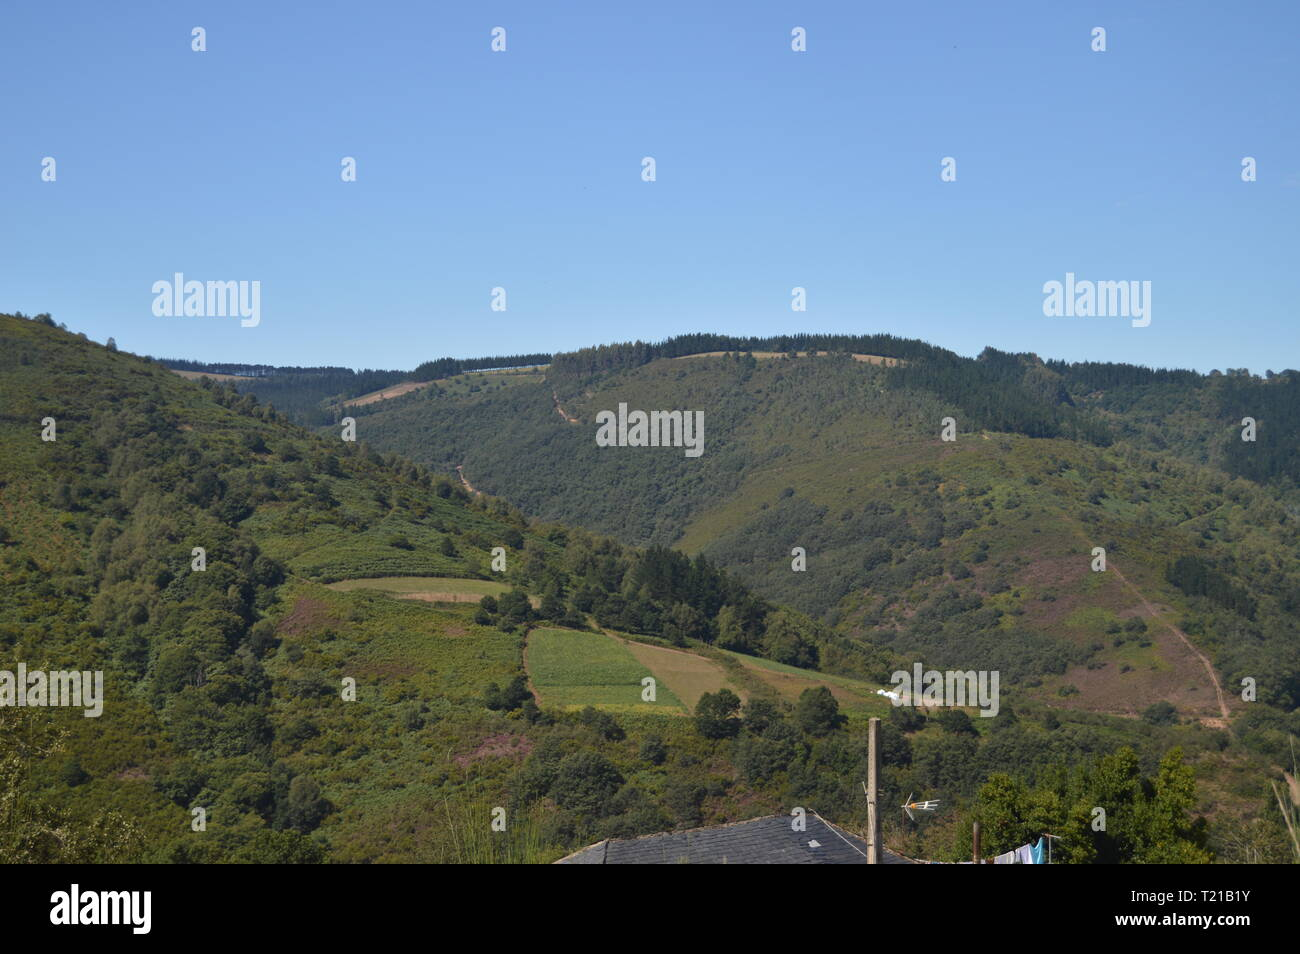 Magnificent Views Of The Mountains Of Galicia Delimiting With Asturias In Rebedul. Nature, Architecture, History, Street Photography. August 24, 2014. - Stock Image